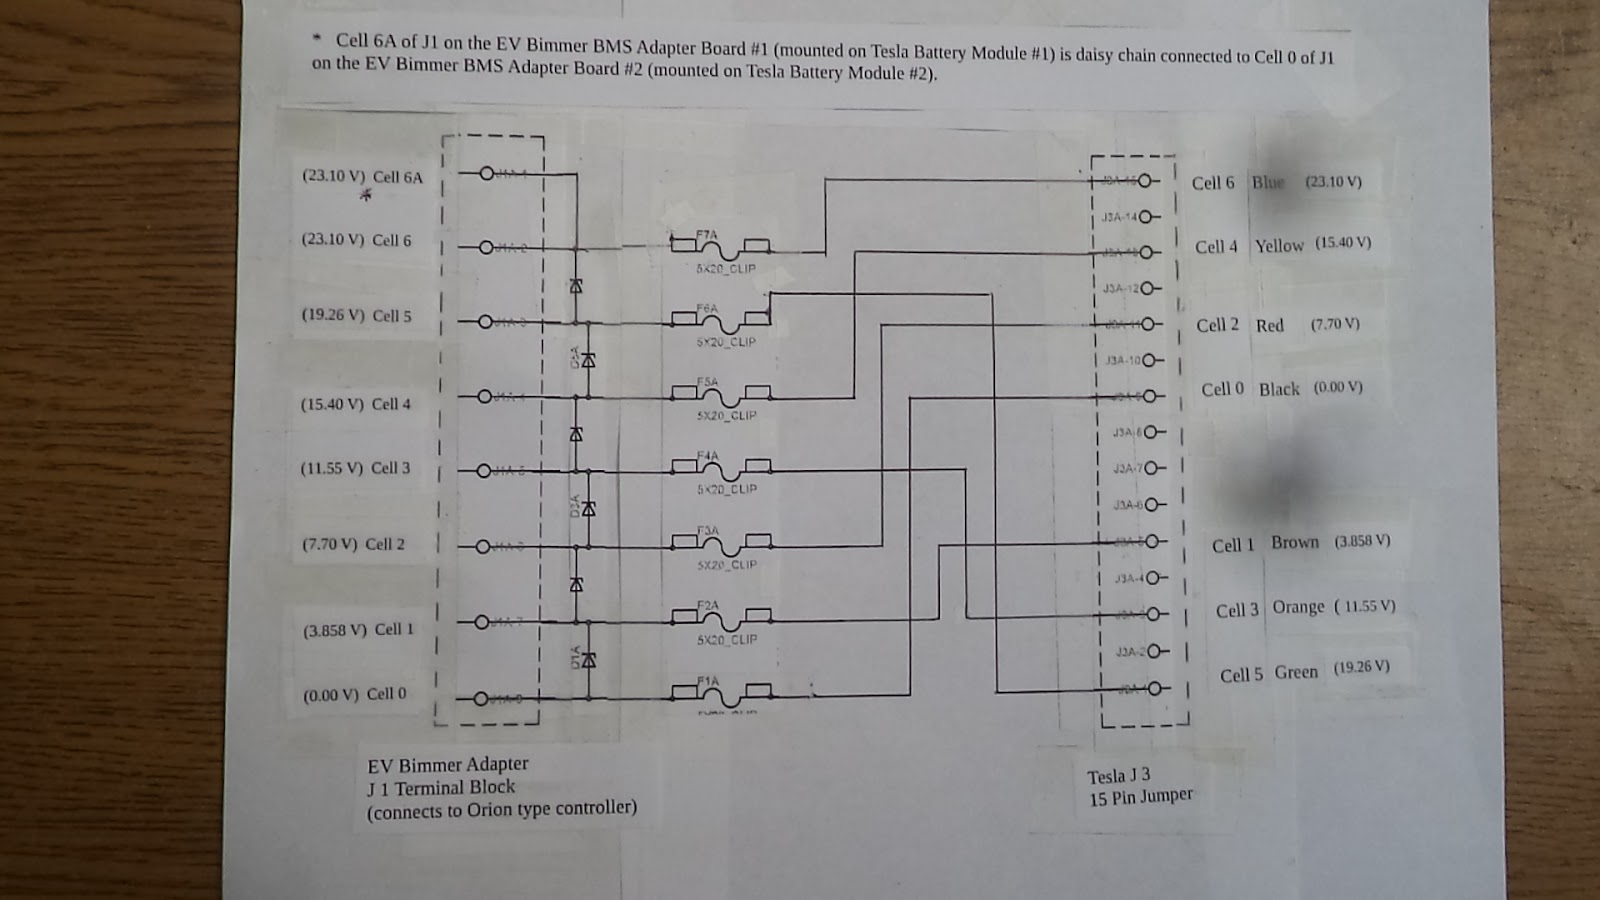 hight resolution of dsc06336 image of the preliminary wiring diagram that connects the orion to tesla module number 1